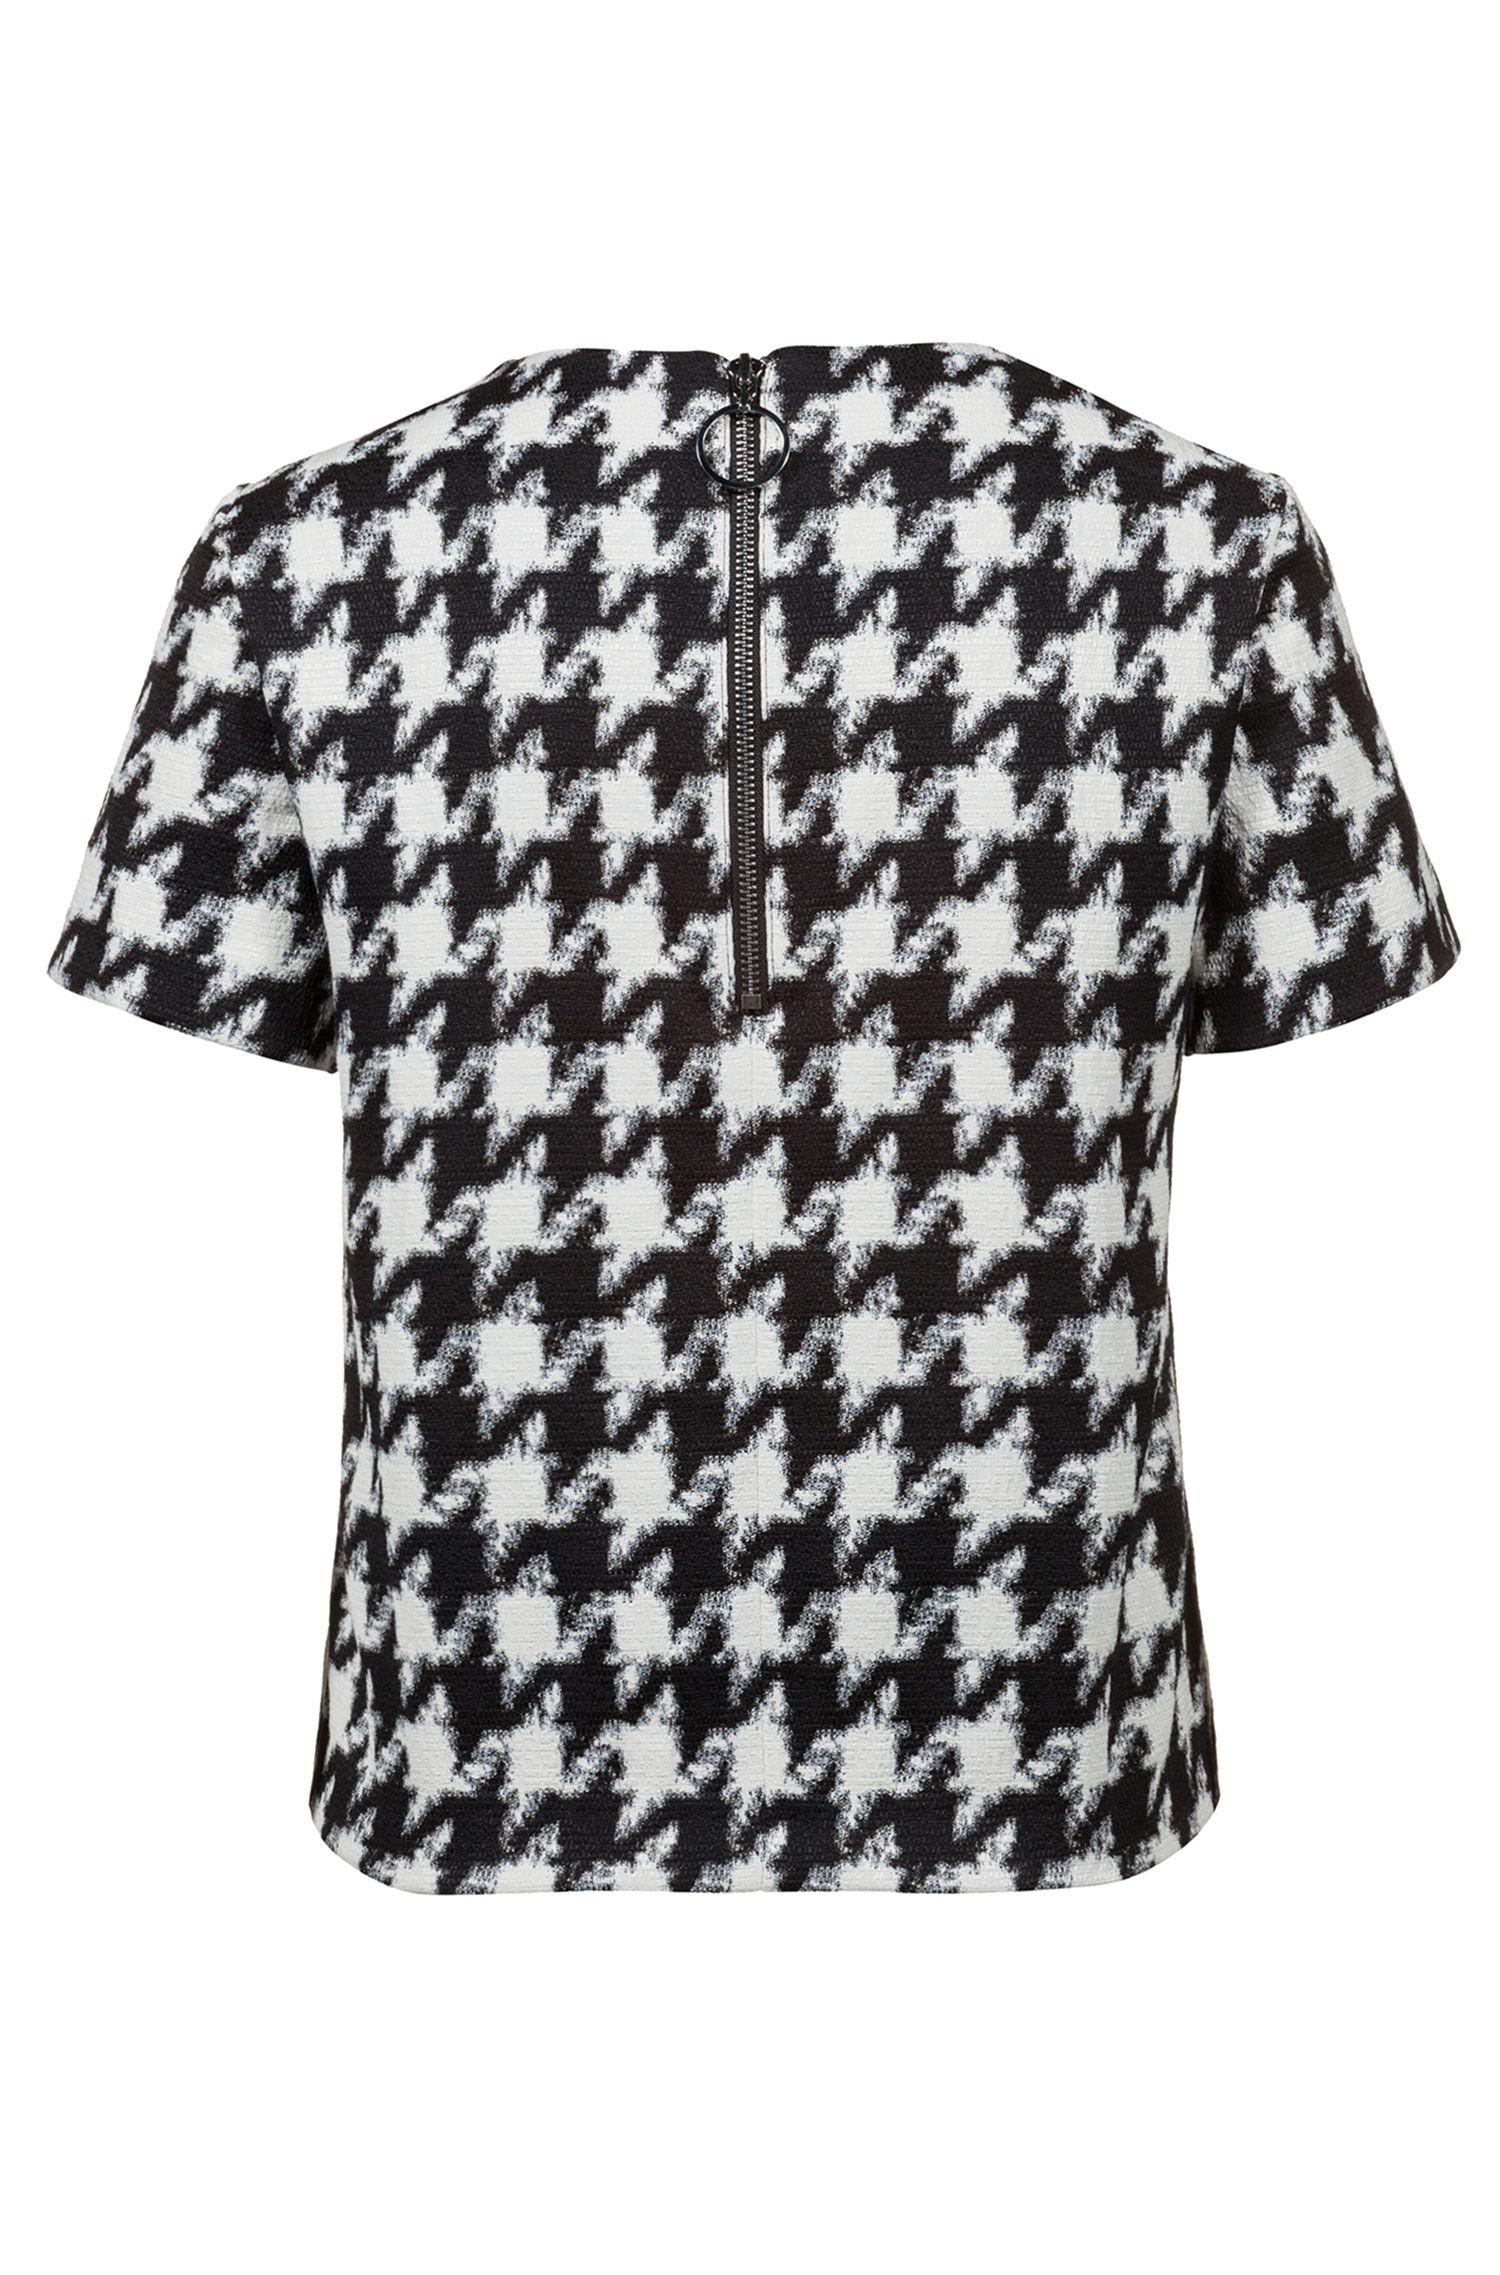 Houndstooth top in a cotton blend, Patterned